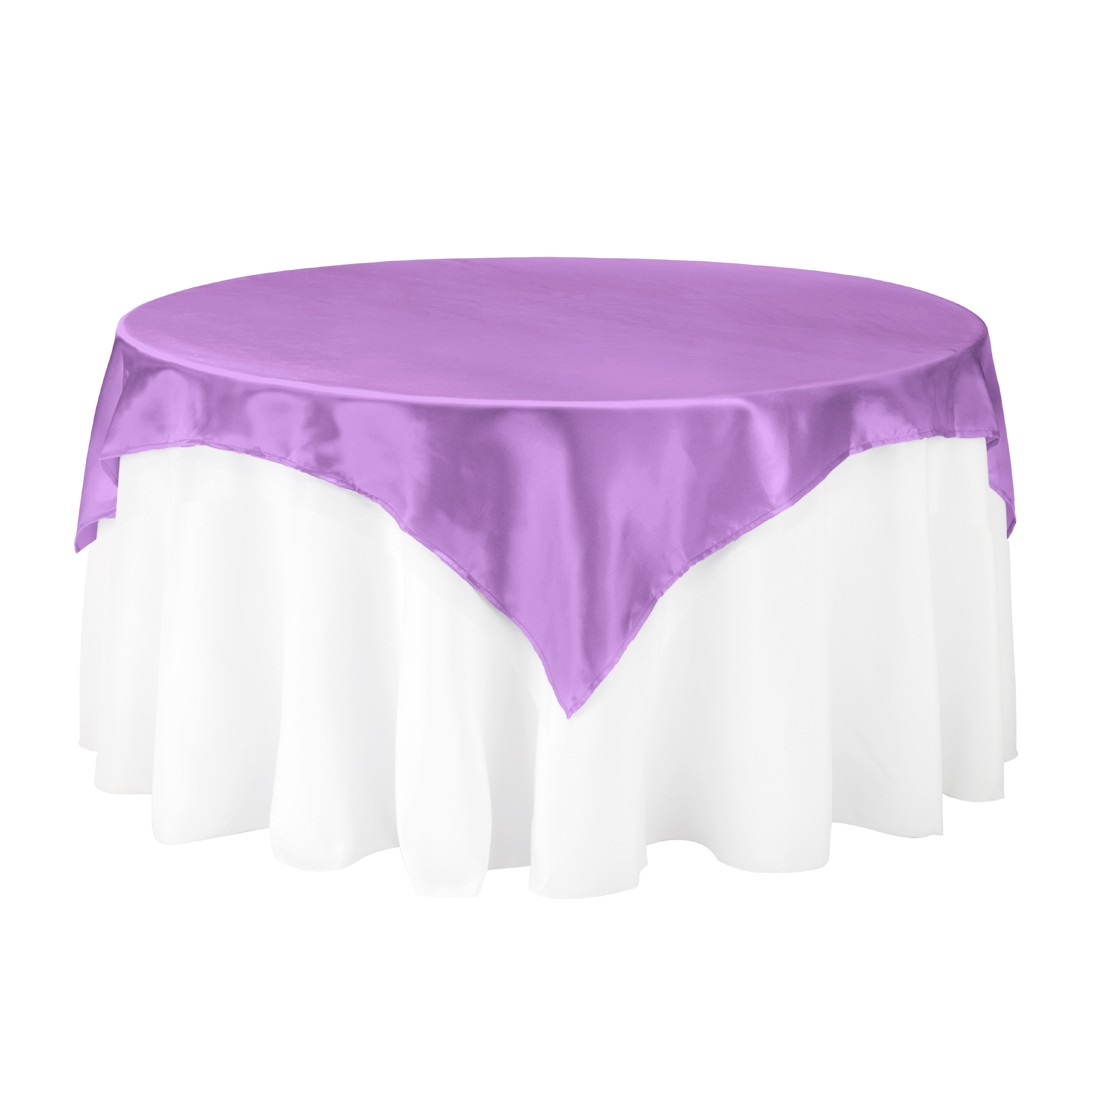 72-inch-square-satin-overlay-lavender-default